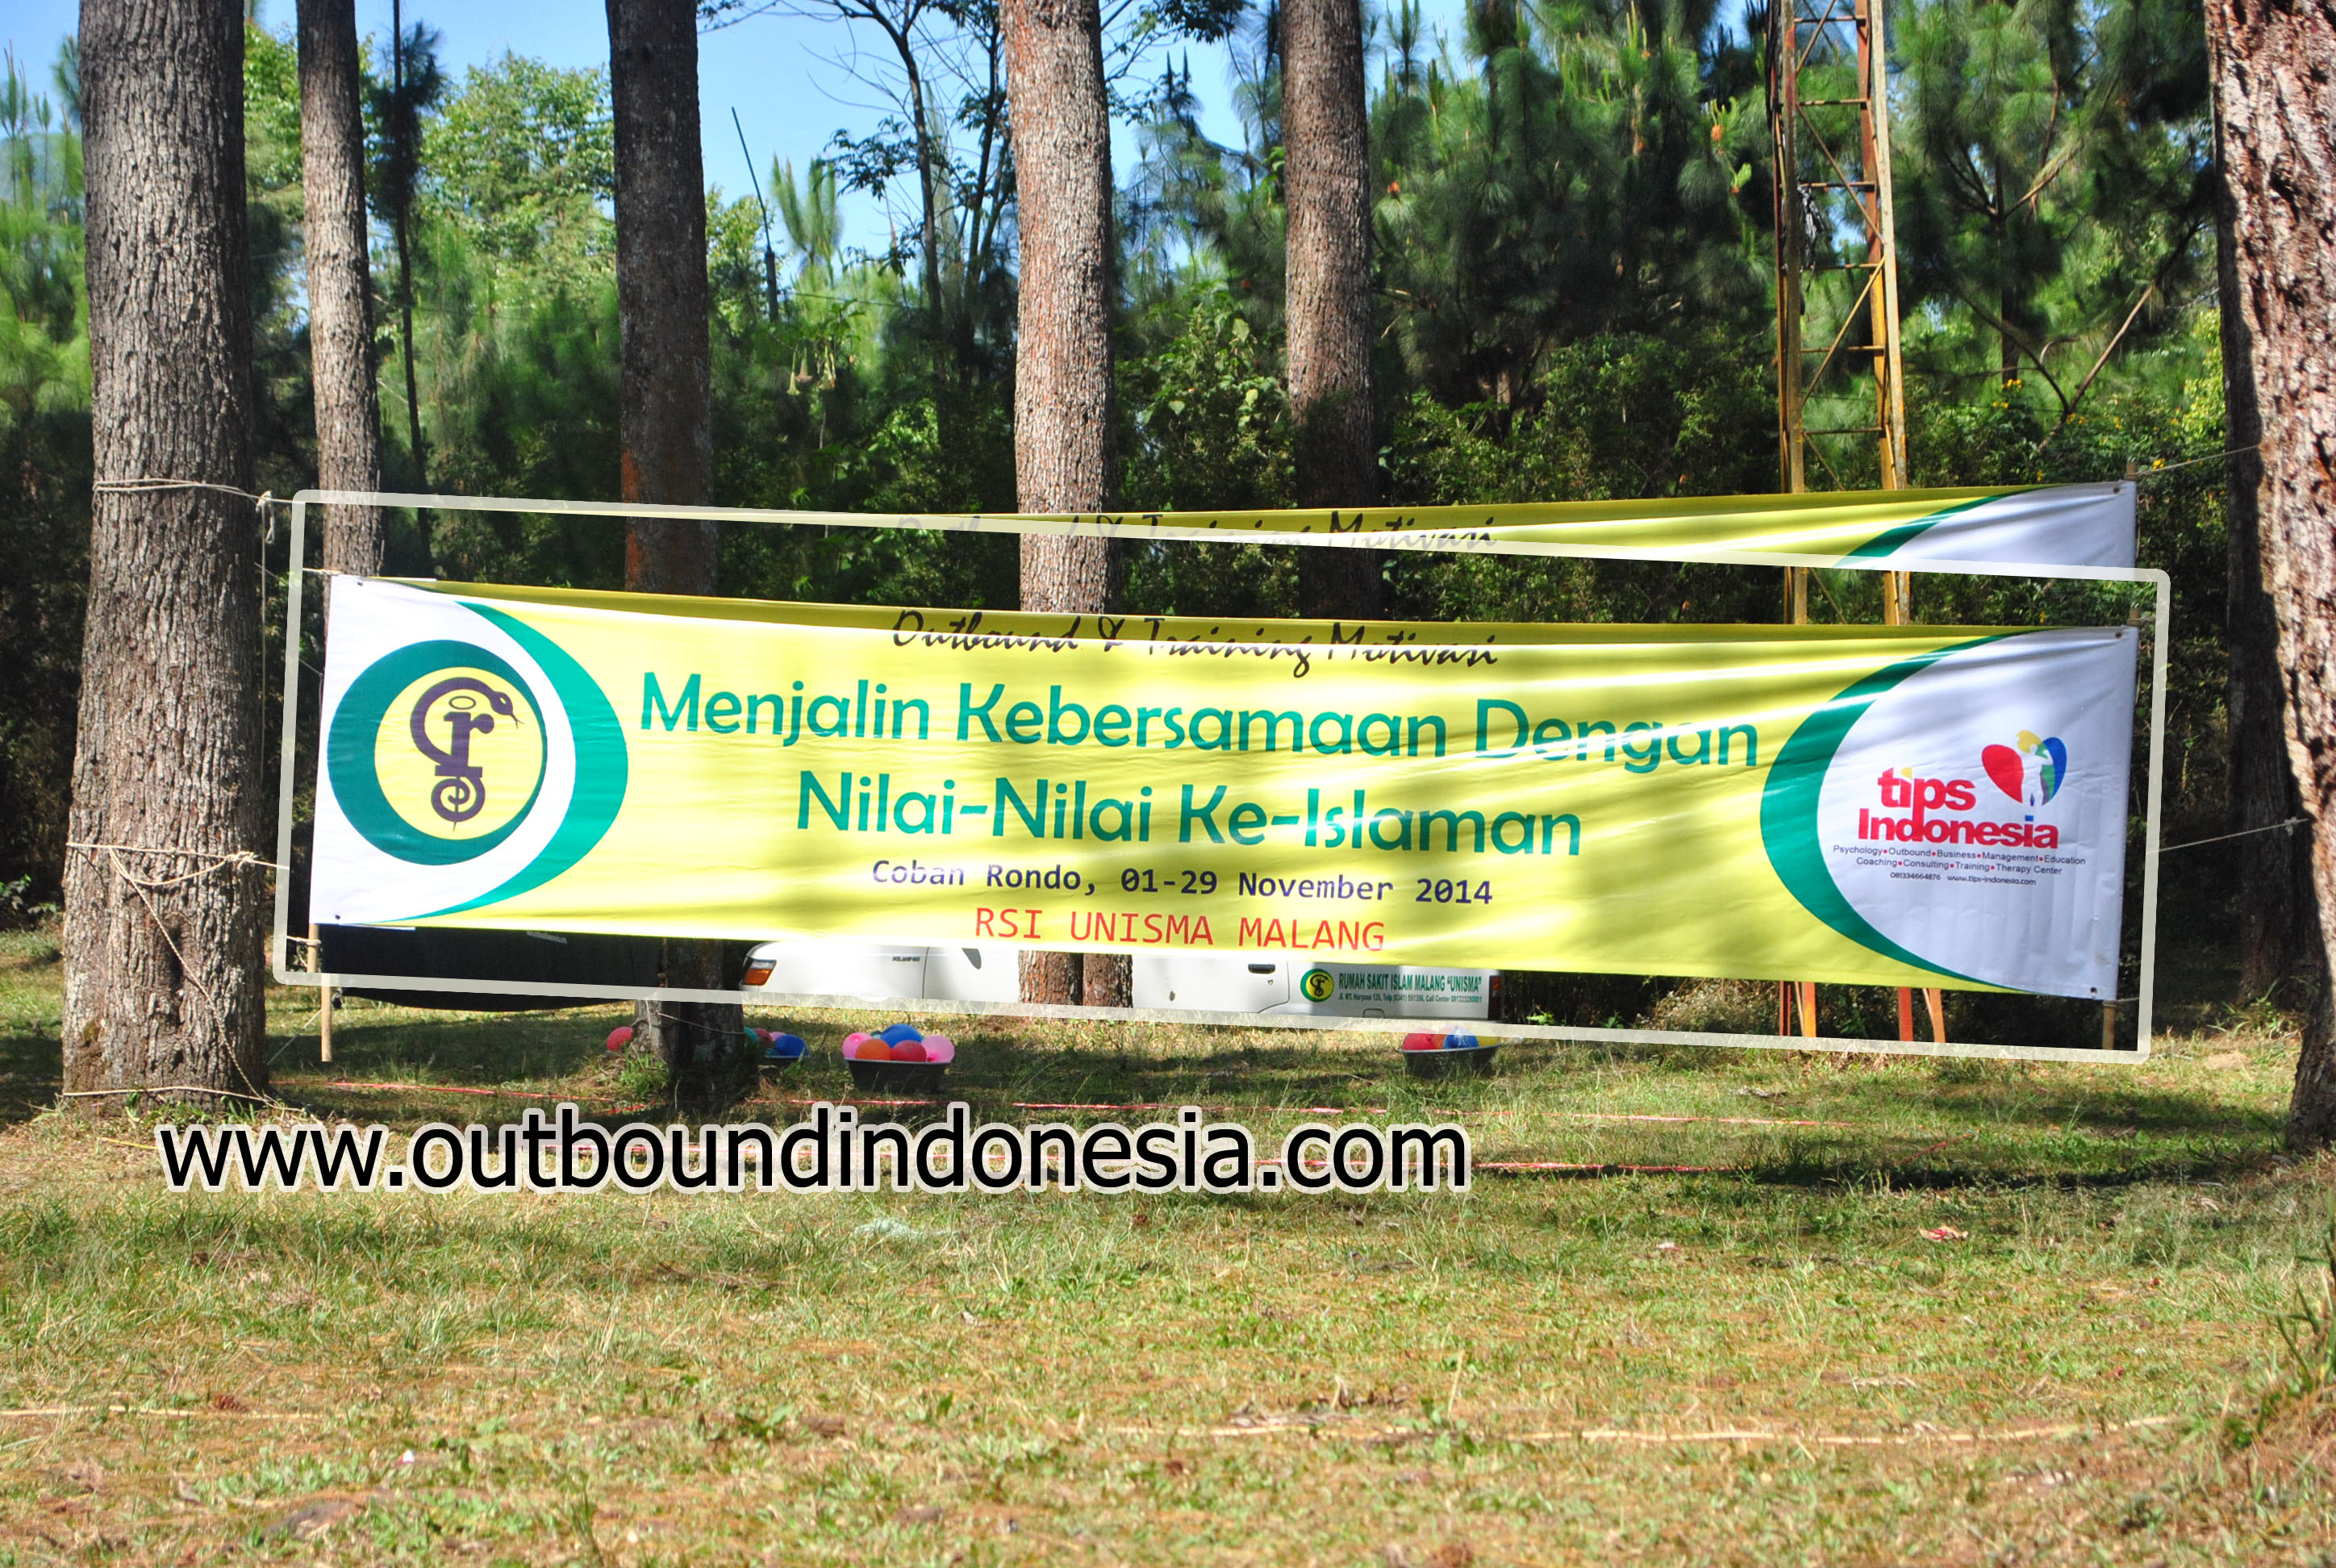 Outbound RSI UNISMA, www.outboundindonesia.com, 082231080521